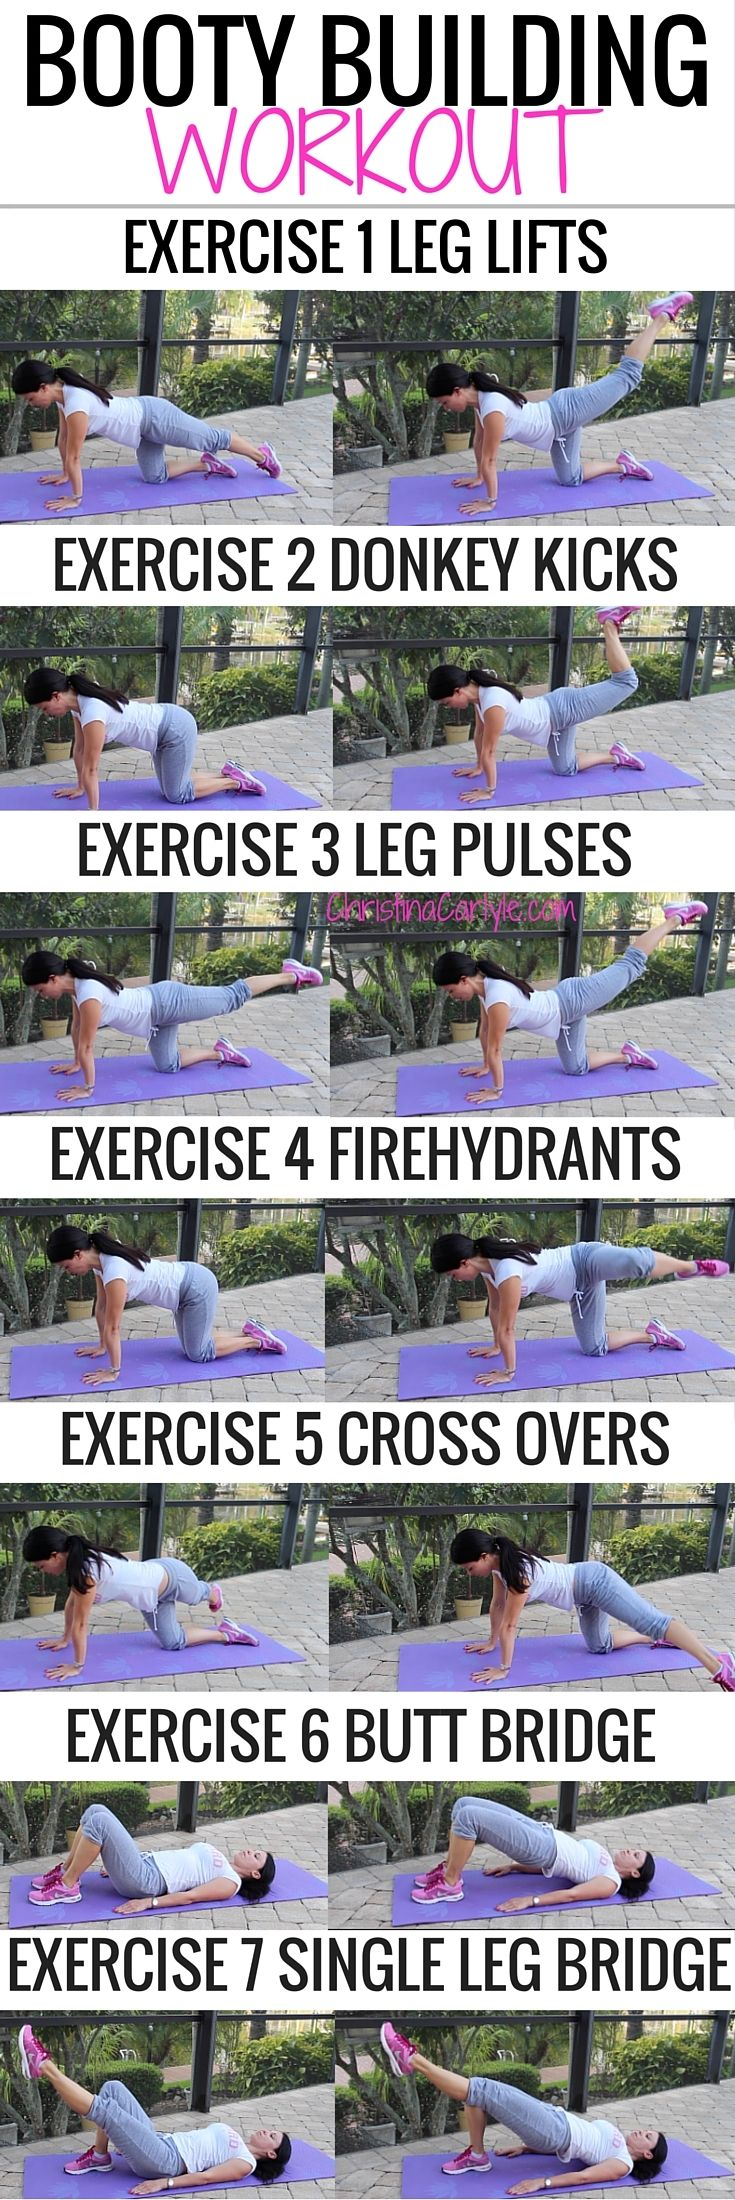 Butt Exercises that really work! Do them all for a complete booty buildingu2026 #totalbodytransformation